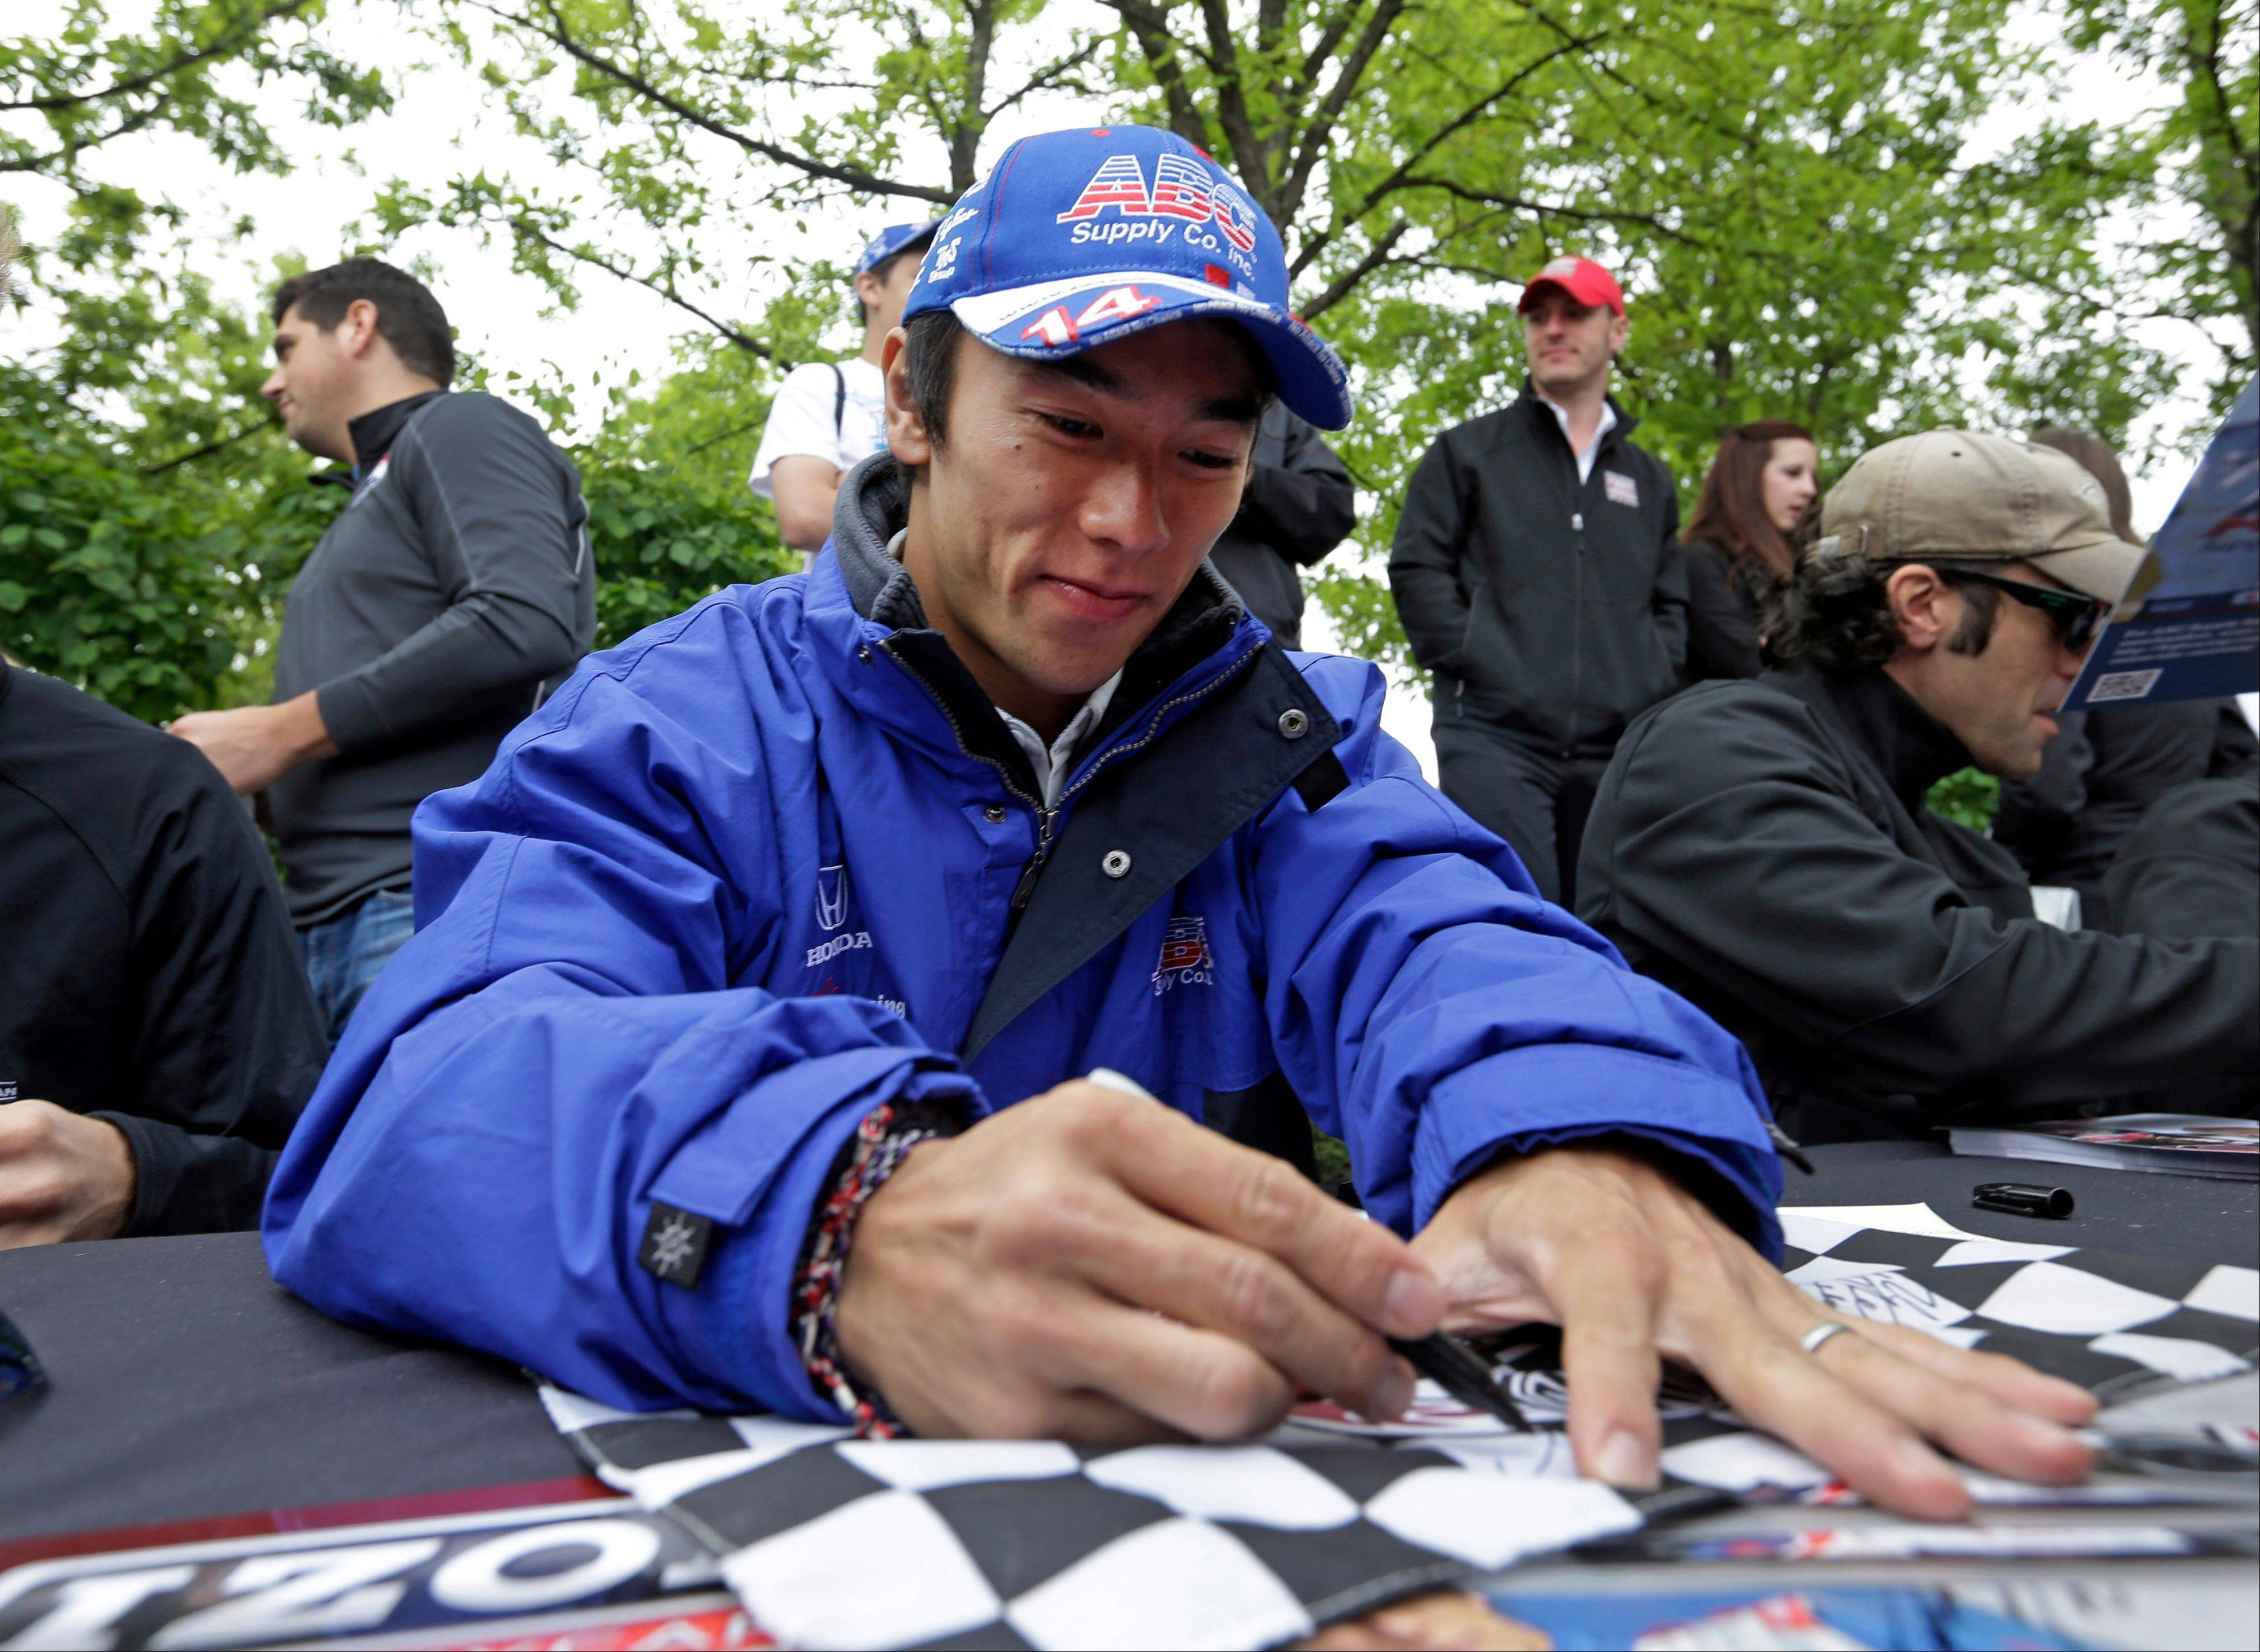 Takuma Sato, of Japan, signs a checkered flag for a fan during an autograph session before the public drivers meeting for the Indianapolis 500 auto race at the Indianapolis Motor Speedway in Indianapolis, Saturday, May 25, 2013.